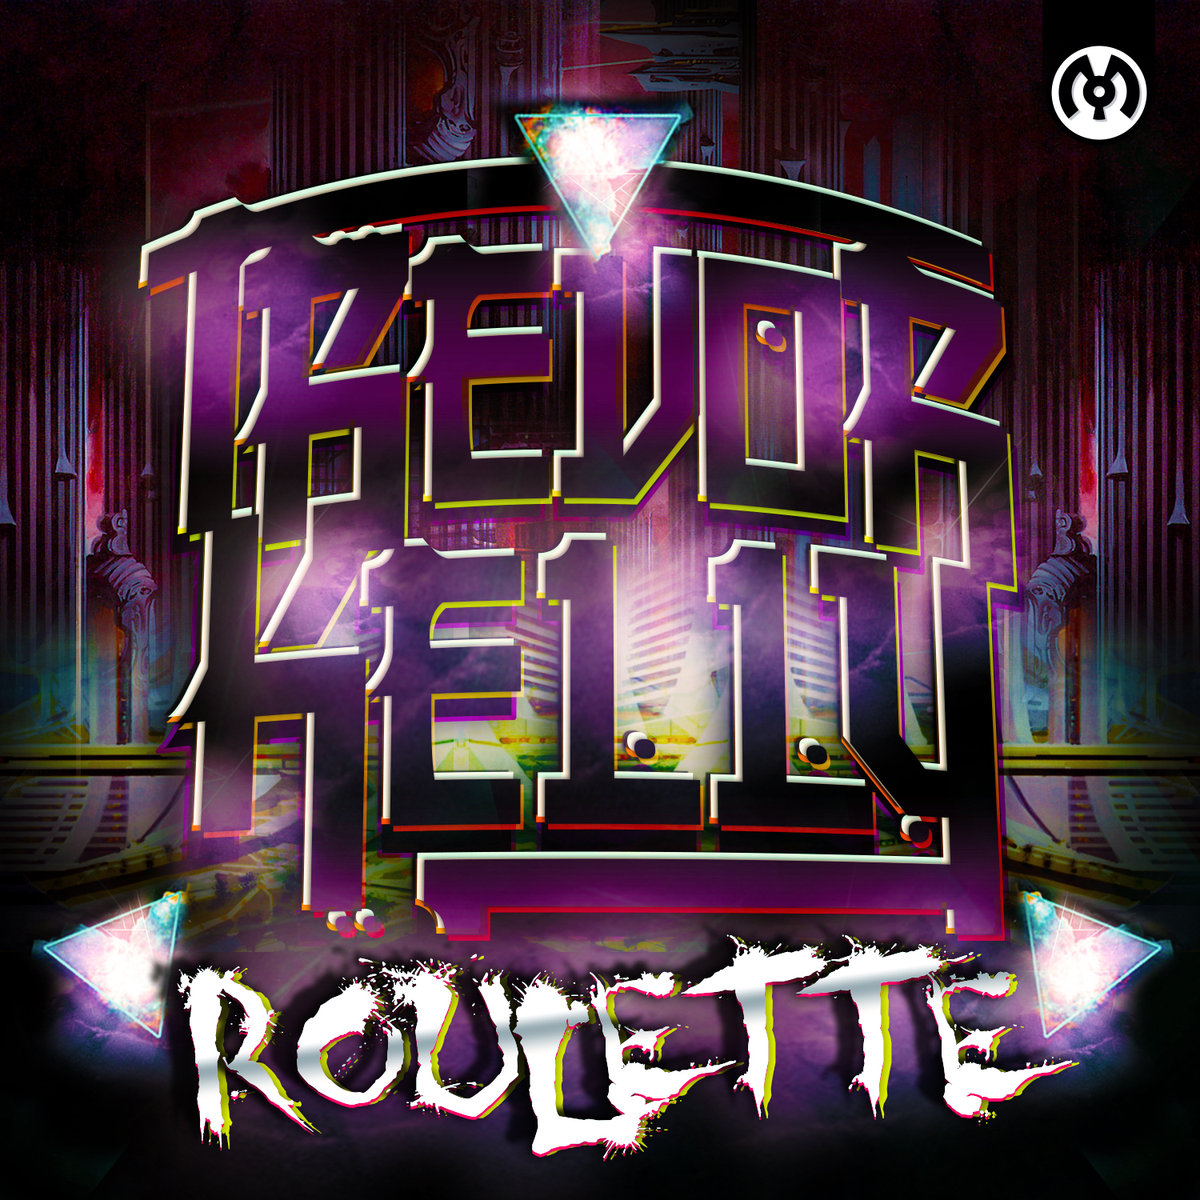 Trevor Kelly & Caidance - IRIE @ 'Roulette' album (electronic, dubstep)